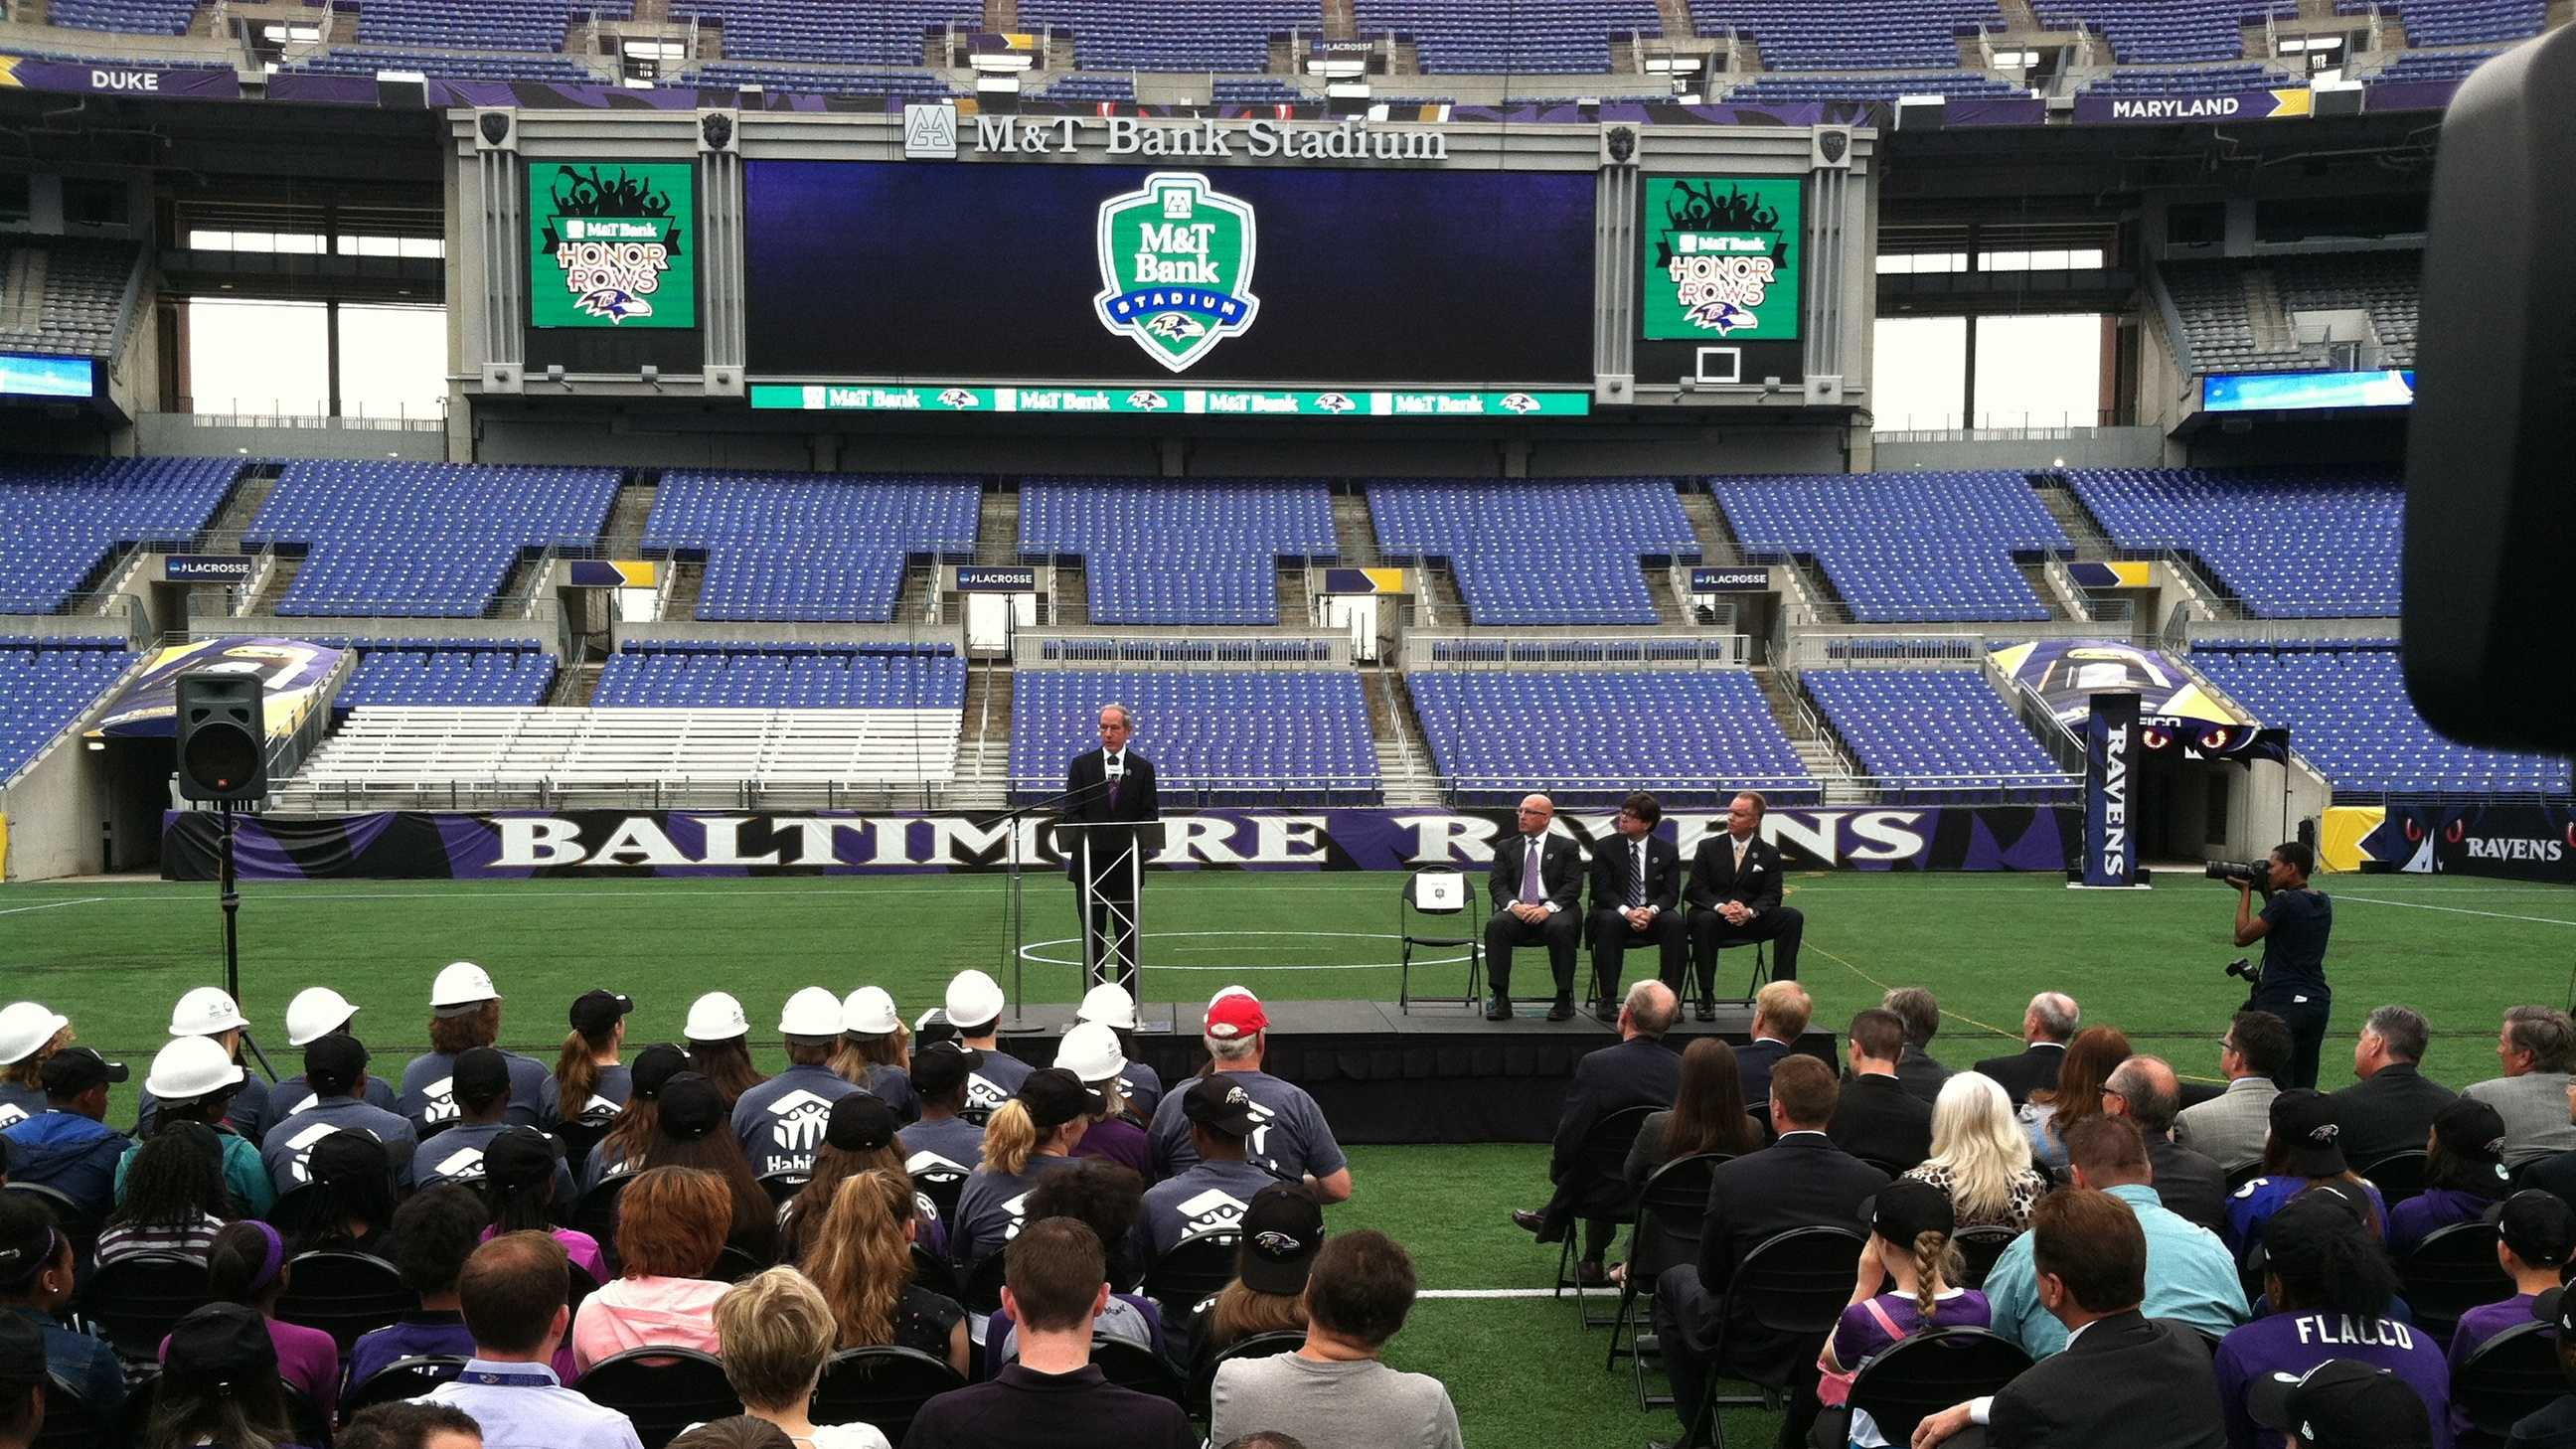 Ravens announce extended partnership with M&T Bank